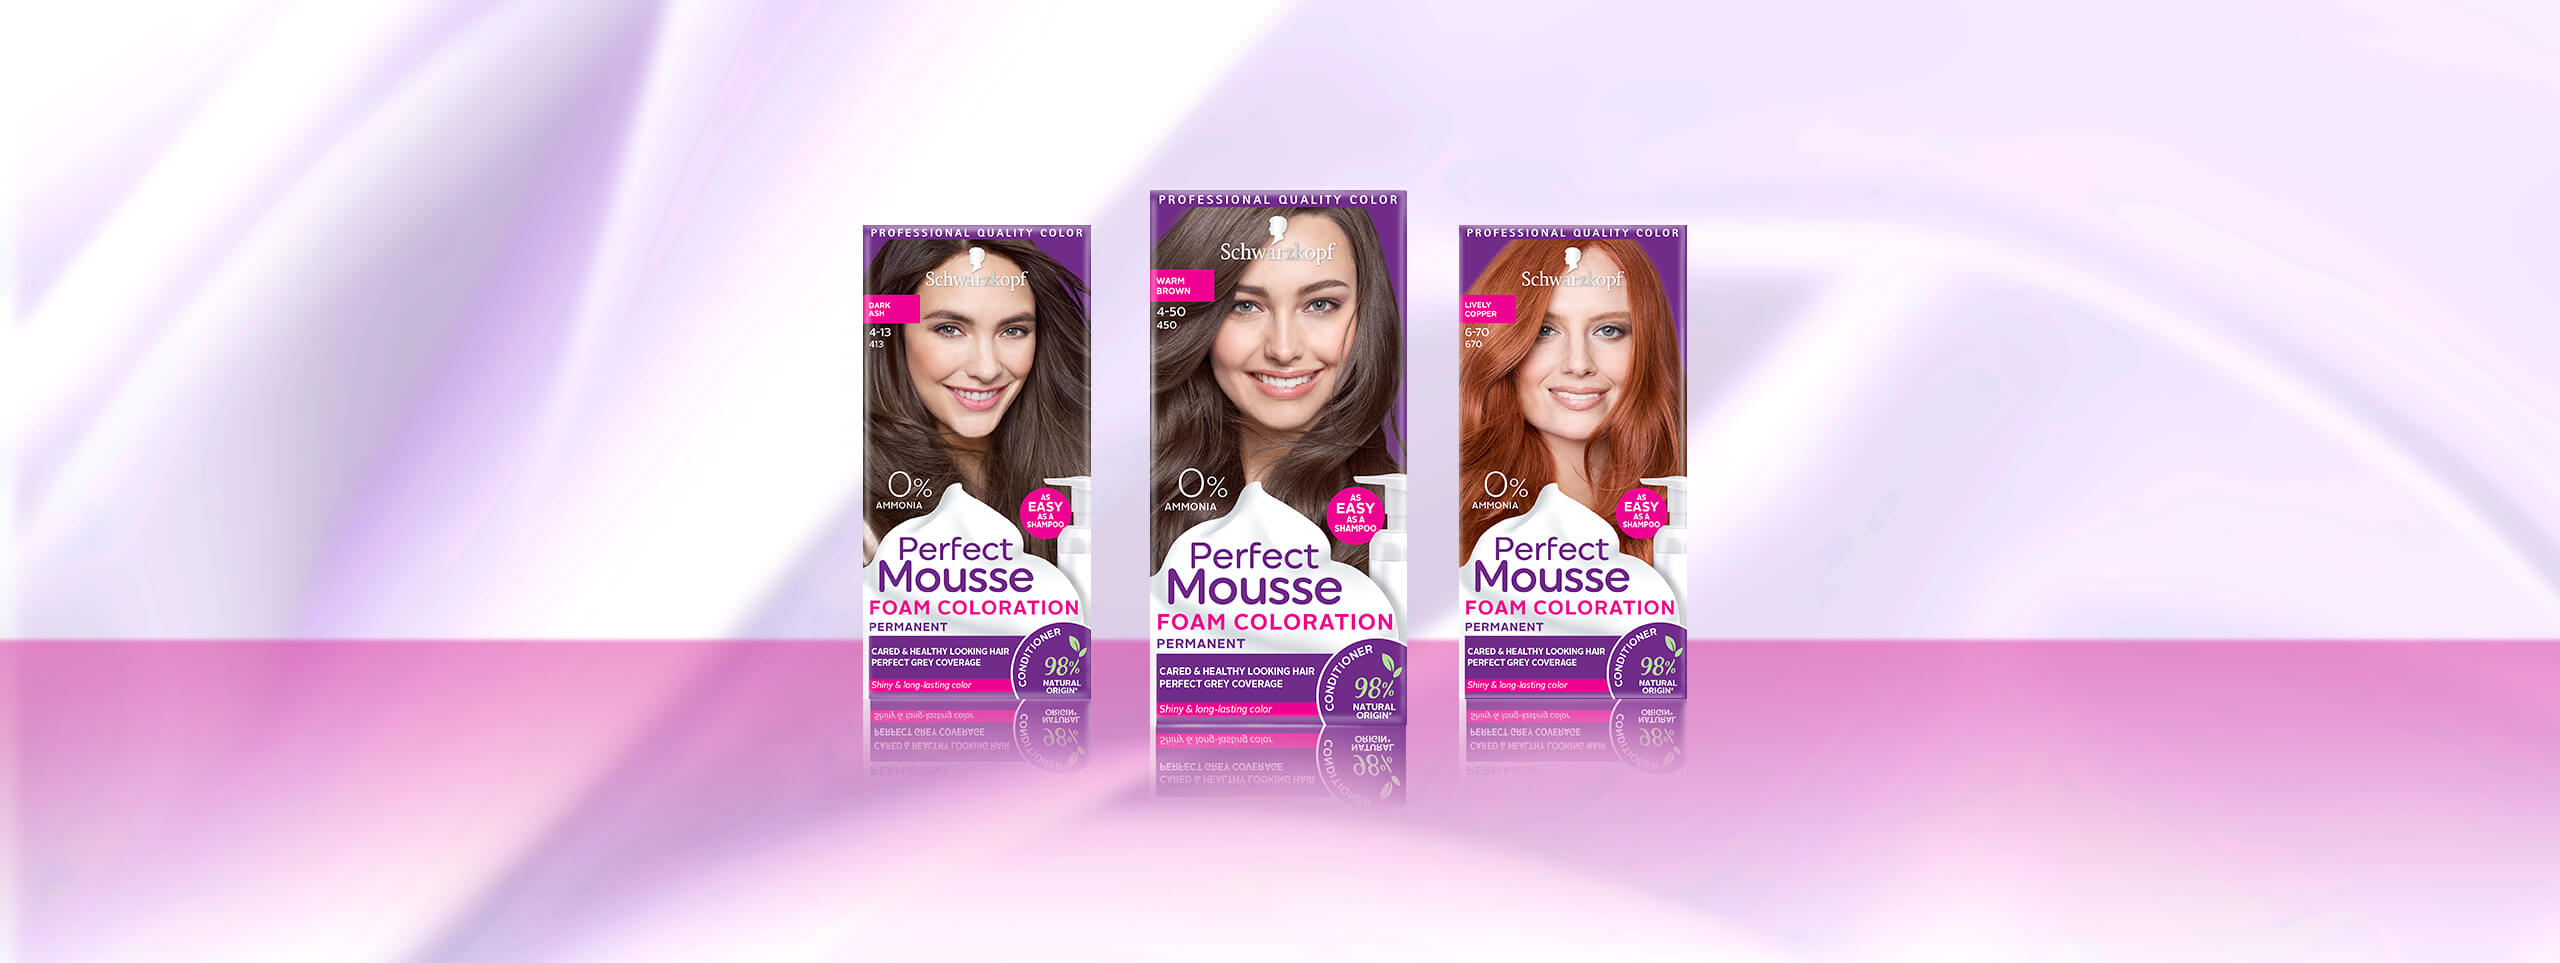 perfect_mousse_com_our_latest_highlights_2560x963